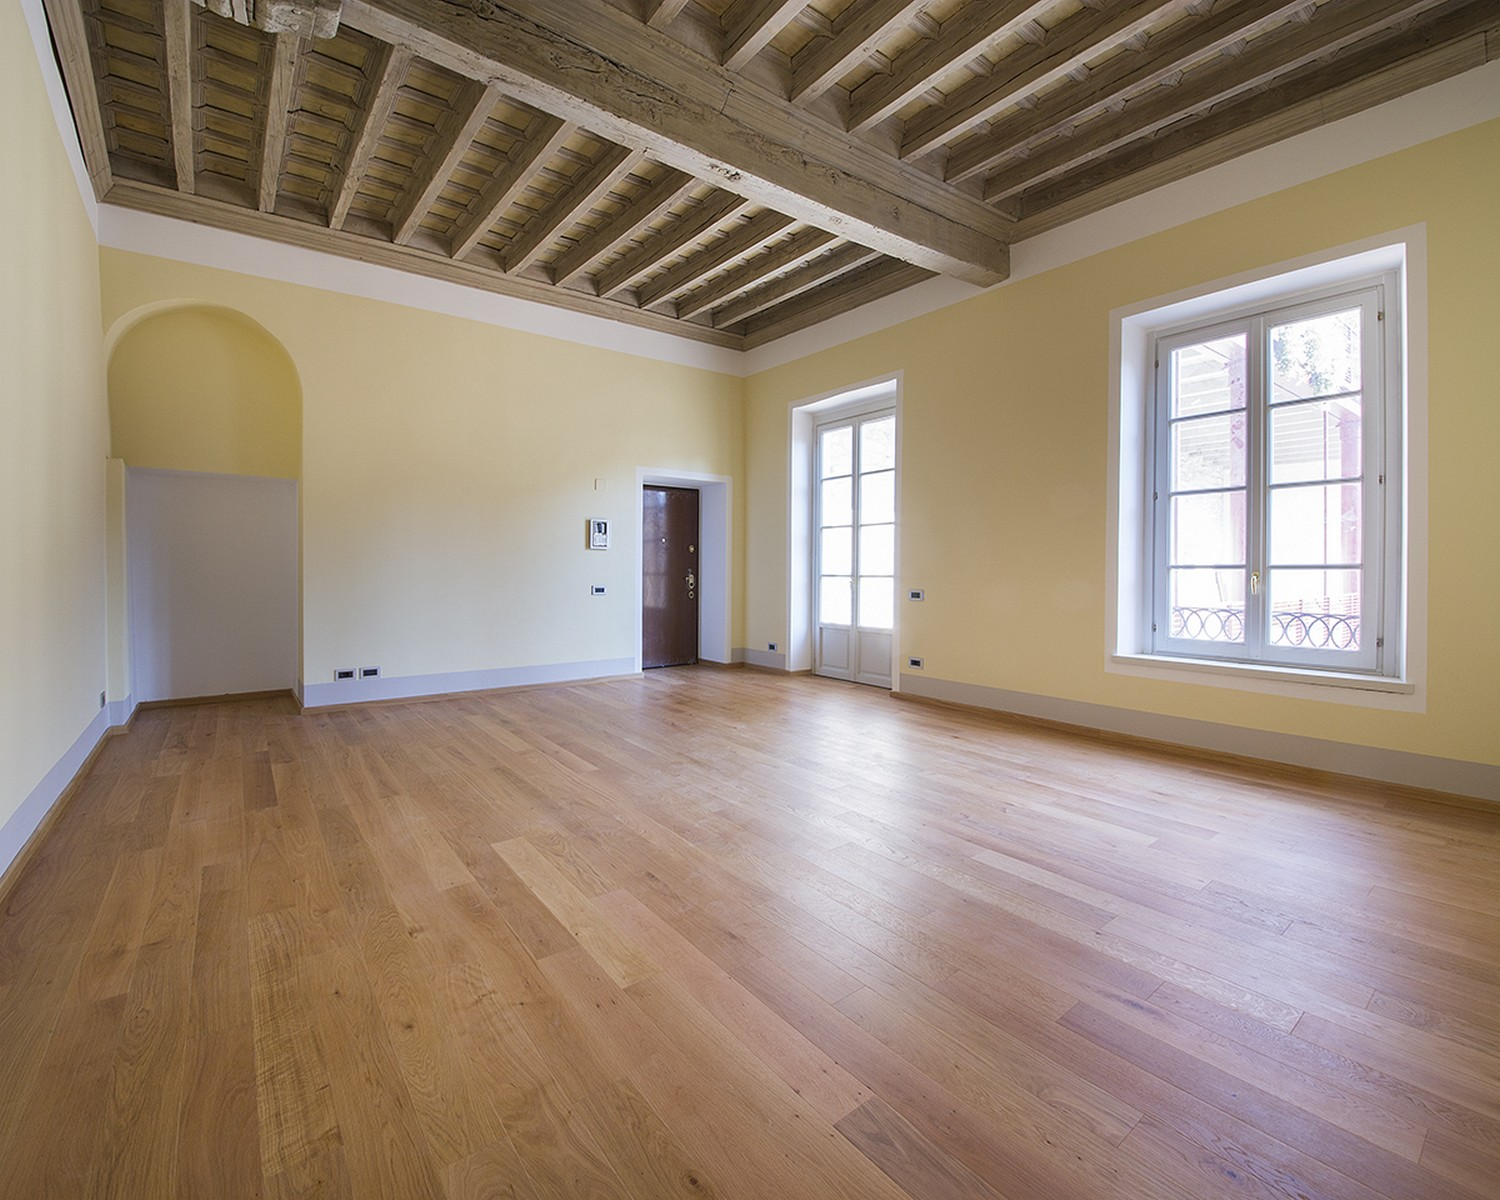 Căn hộ vì Bán tại Finely renovated apartment in the historic center of Como Via Cinque Giornate Como, Como, 22100 Ý